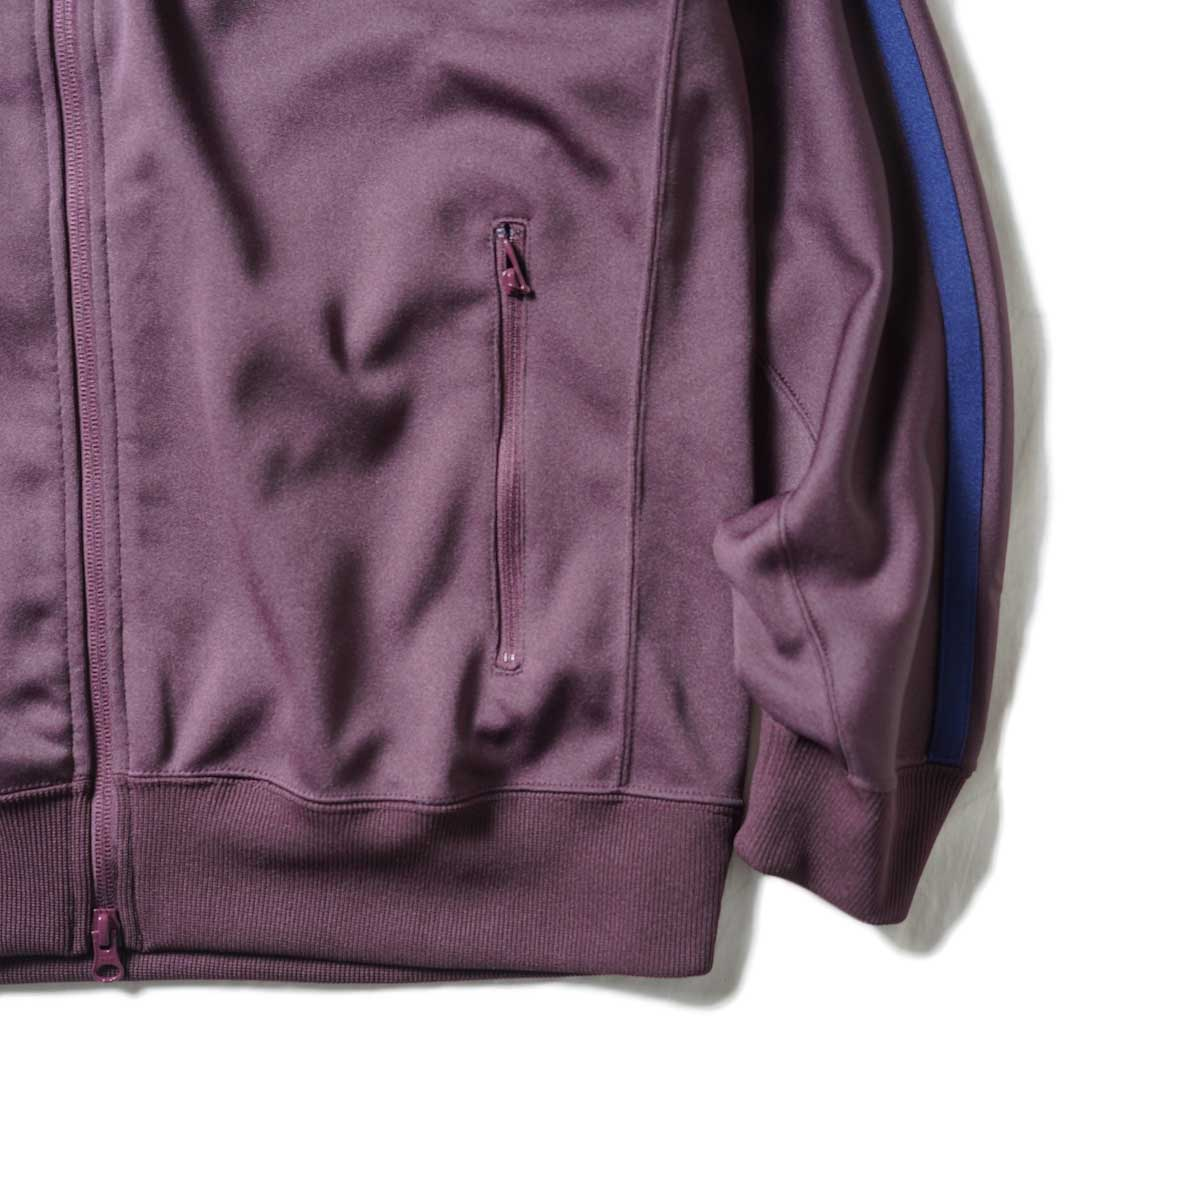 South2 West8 / Trainer jacket - Poly Smooth (Burgundy)袖、裾